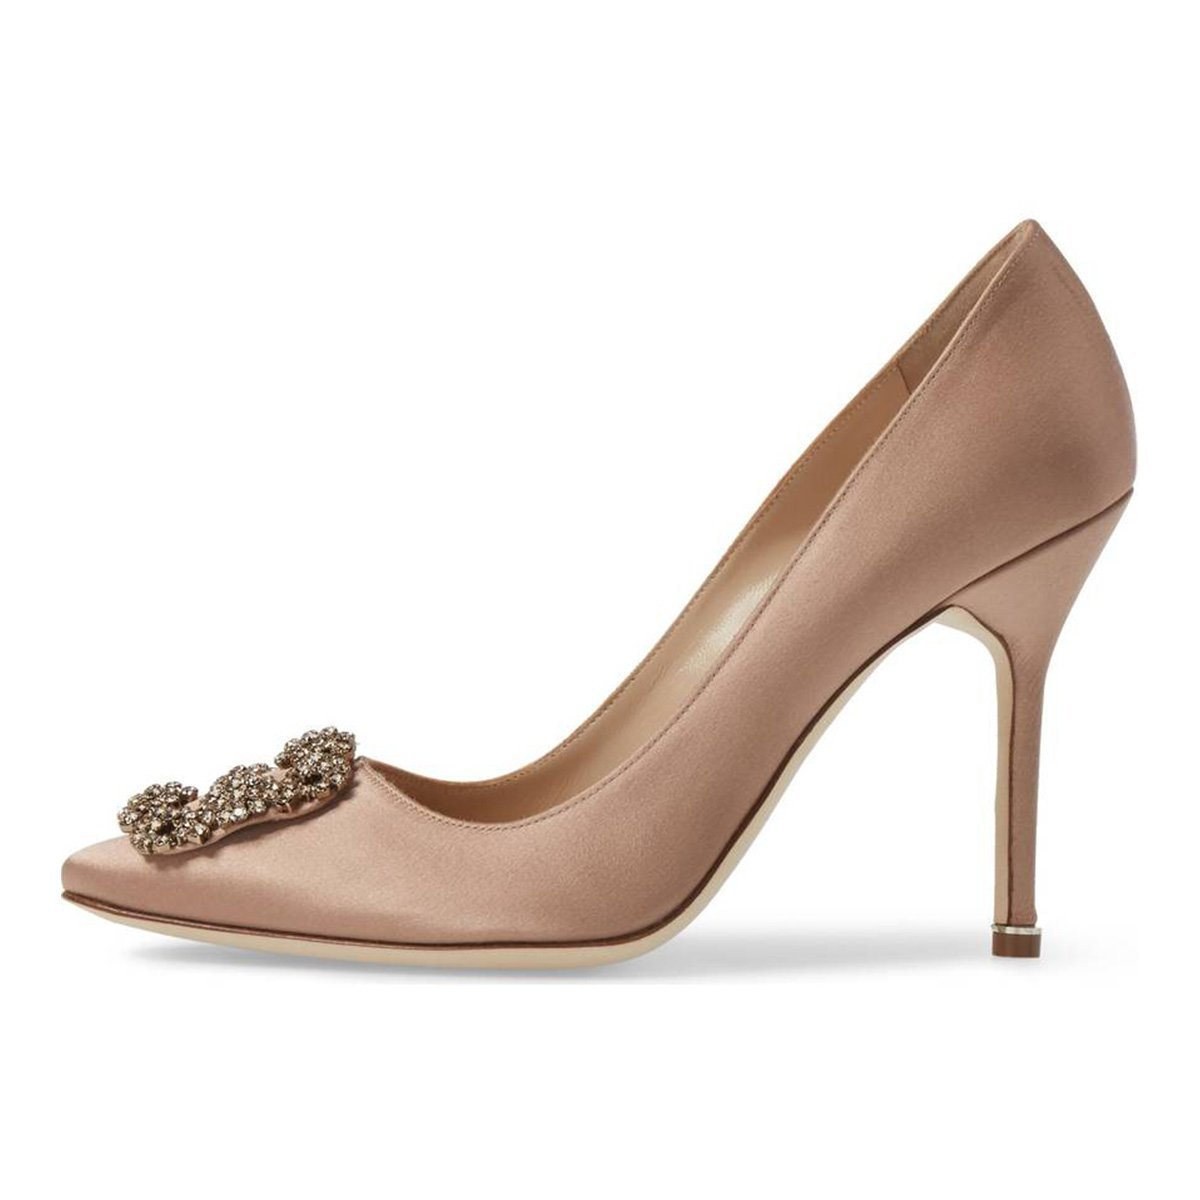 Women's AS011 Pointed Toe Diamonds Satin Wedding Party Evening Dress Stiletto Heel Shoes Rose Size 7.5 US